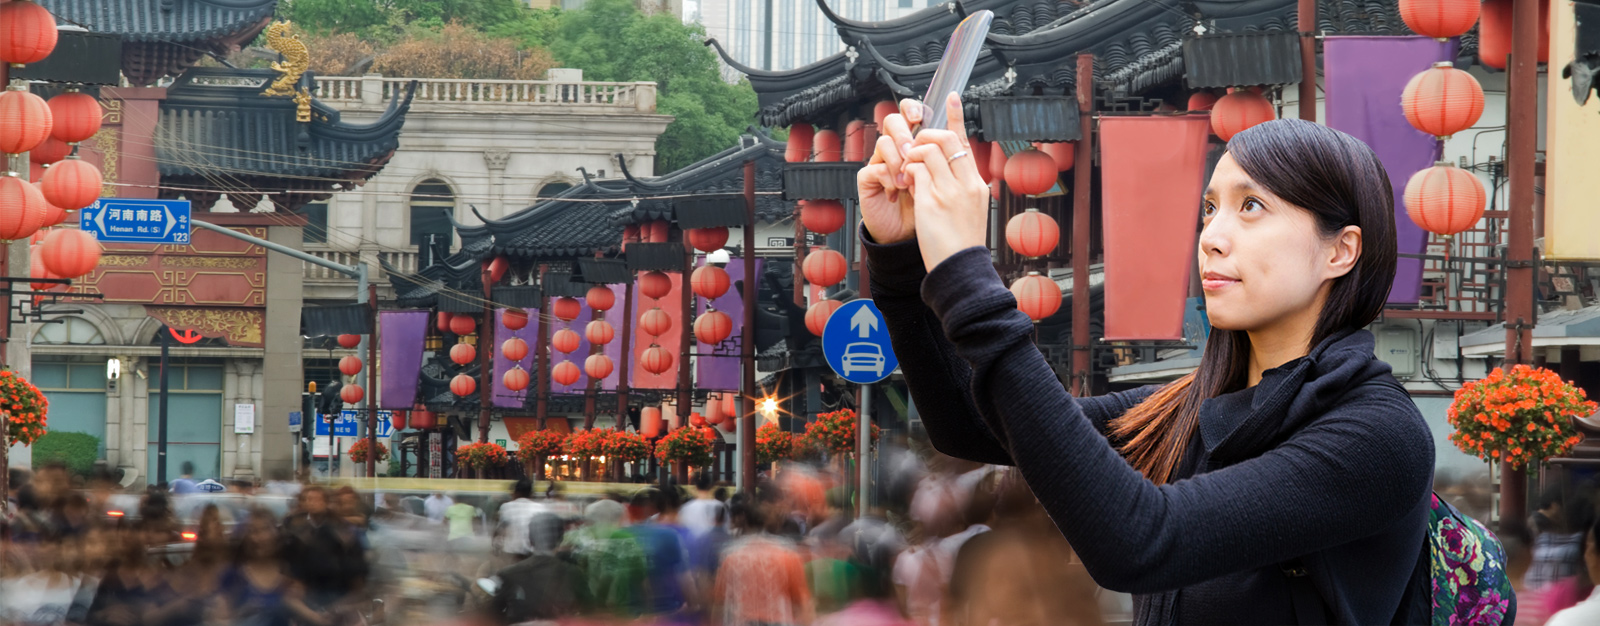 Opportunità per l'e-commerce in Cina